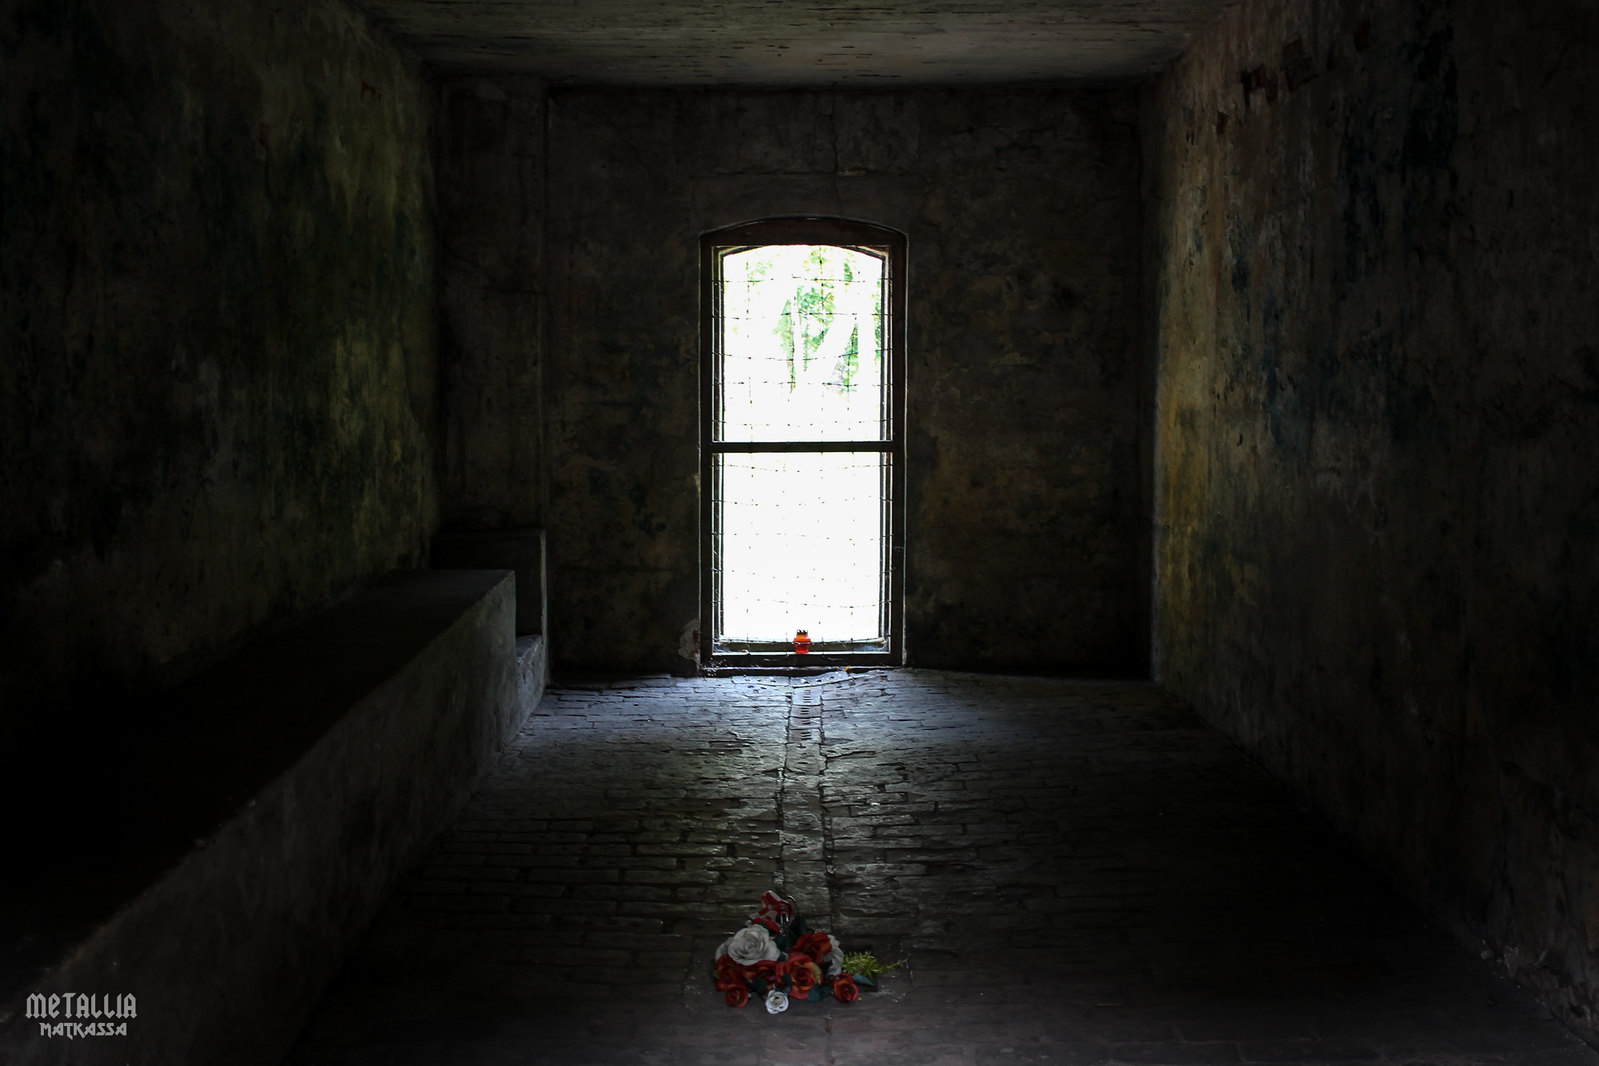 sztutowo, stutthof concentration camp, dark tourism, tuskaturismi, concentration camps